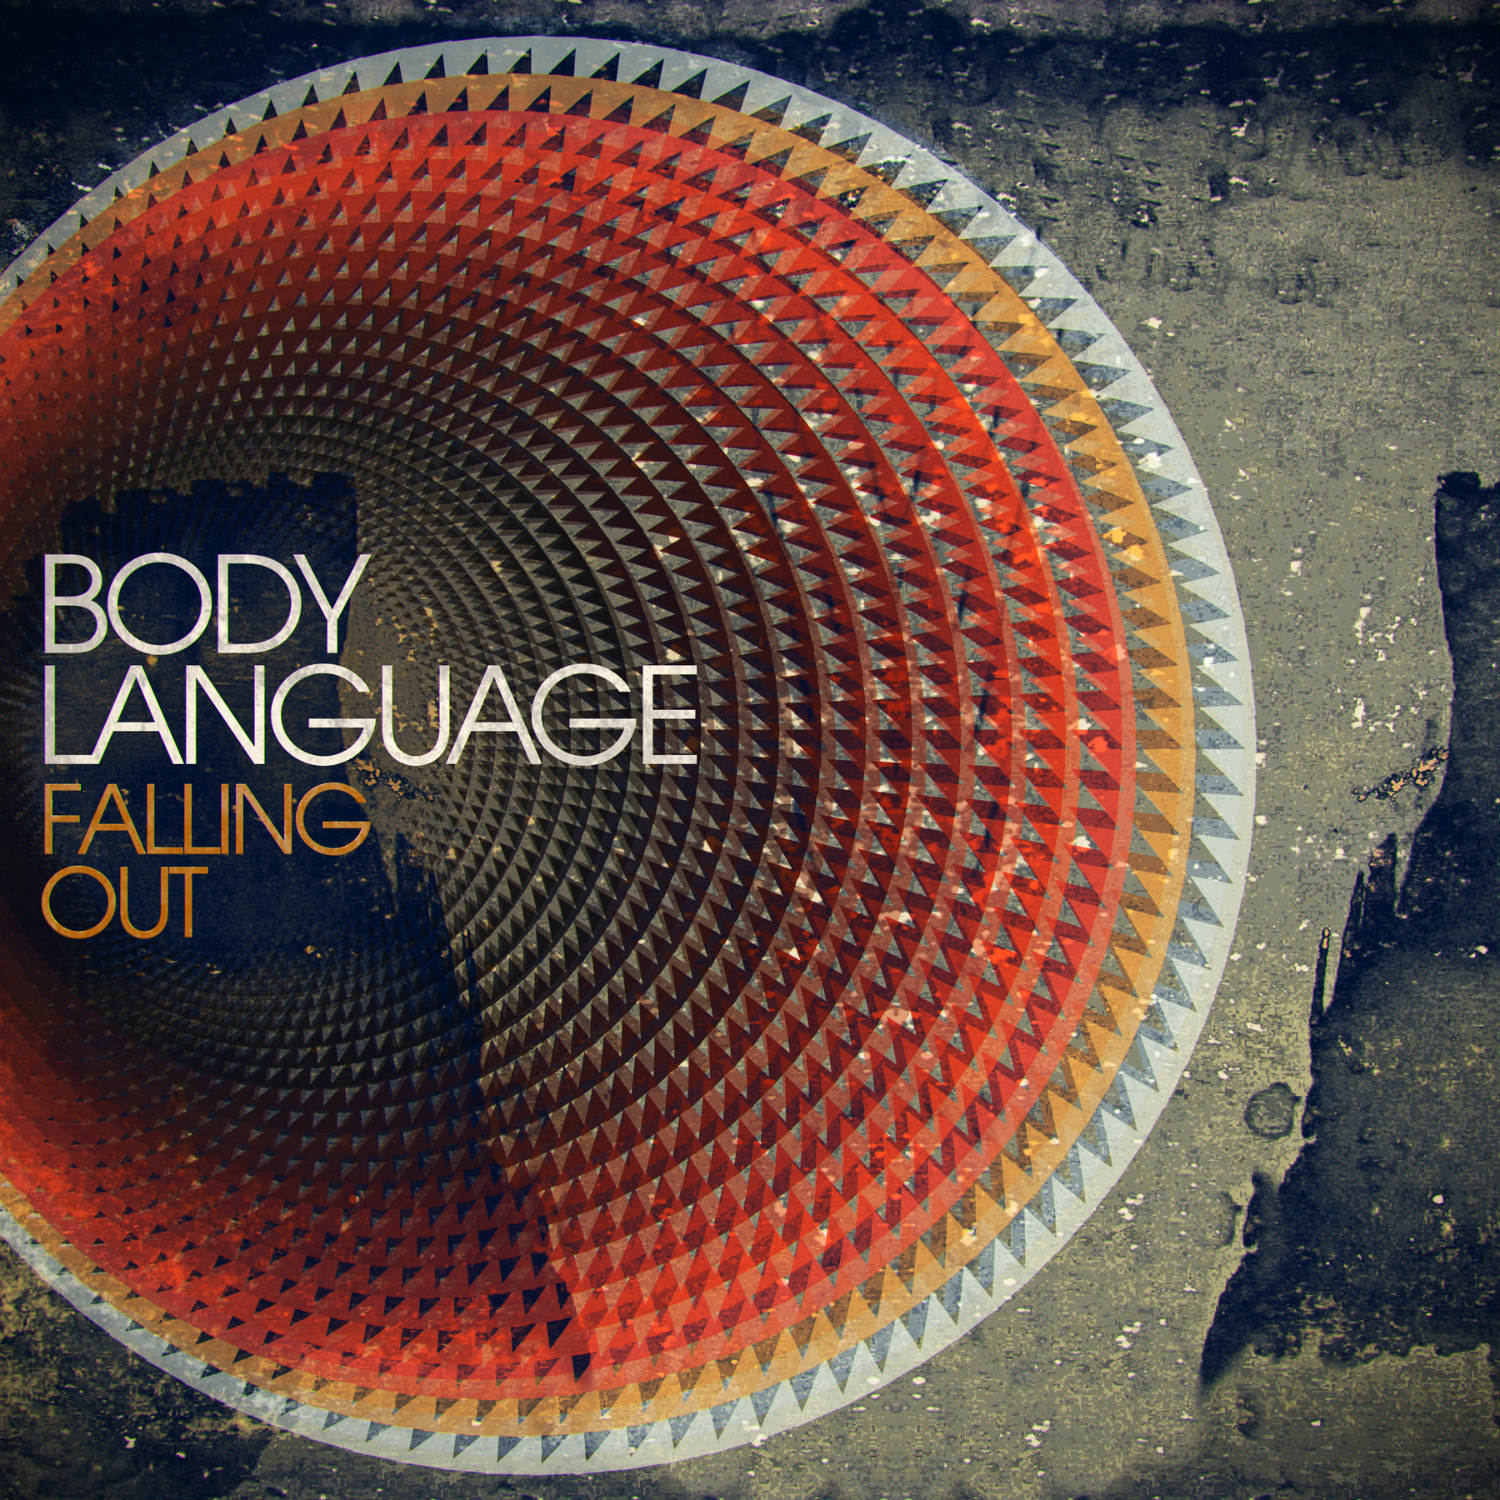 Body Language - Falling Outx